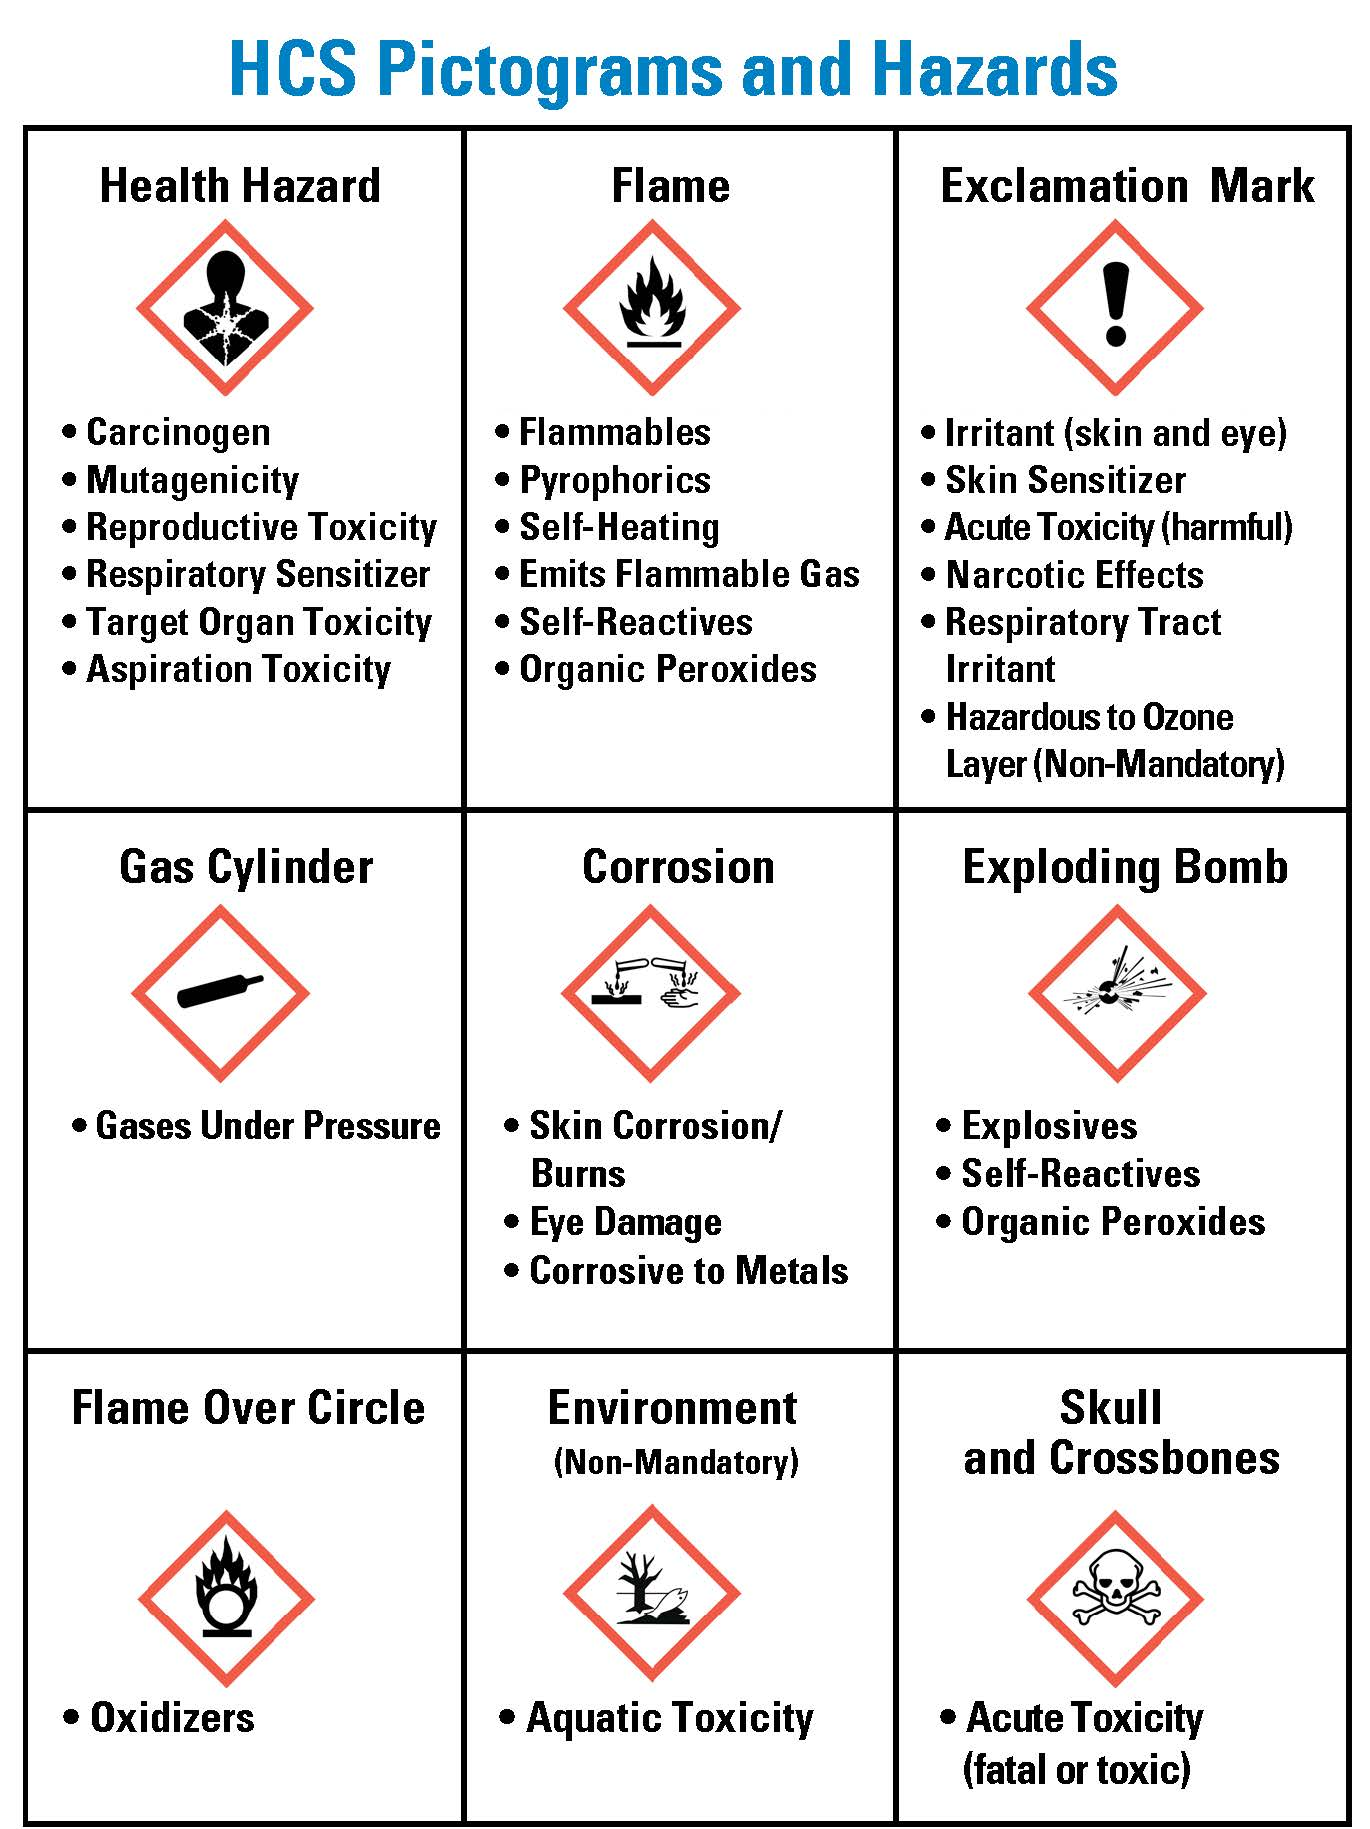 A Visual Guide to HazCom Pictograms, Chemical Labels, and